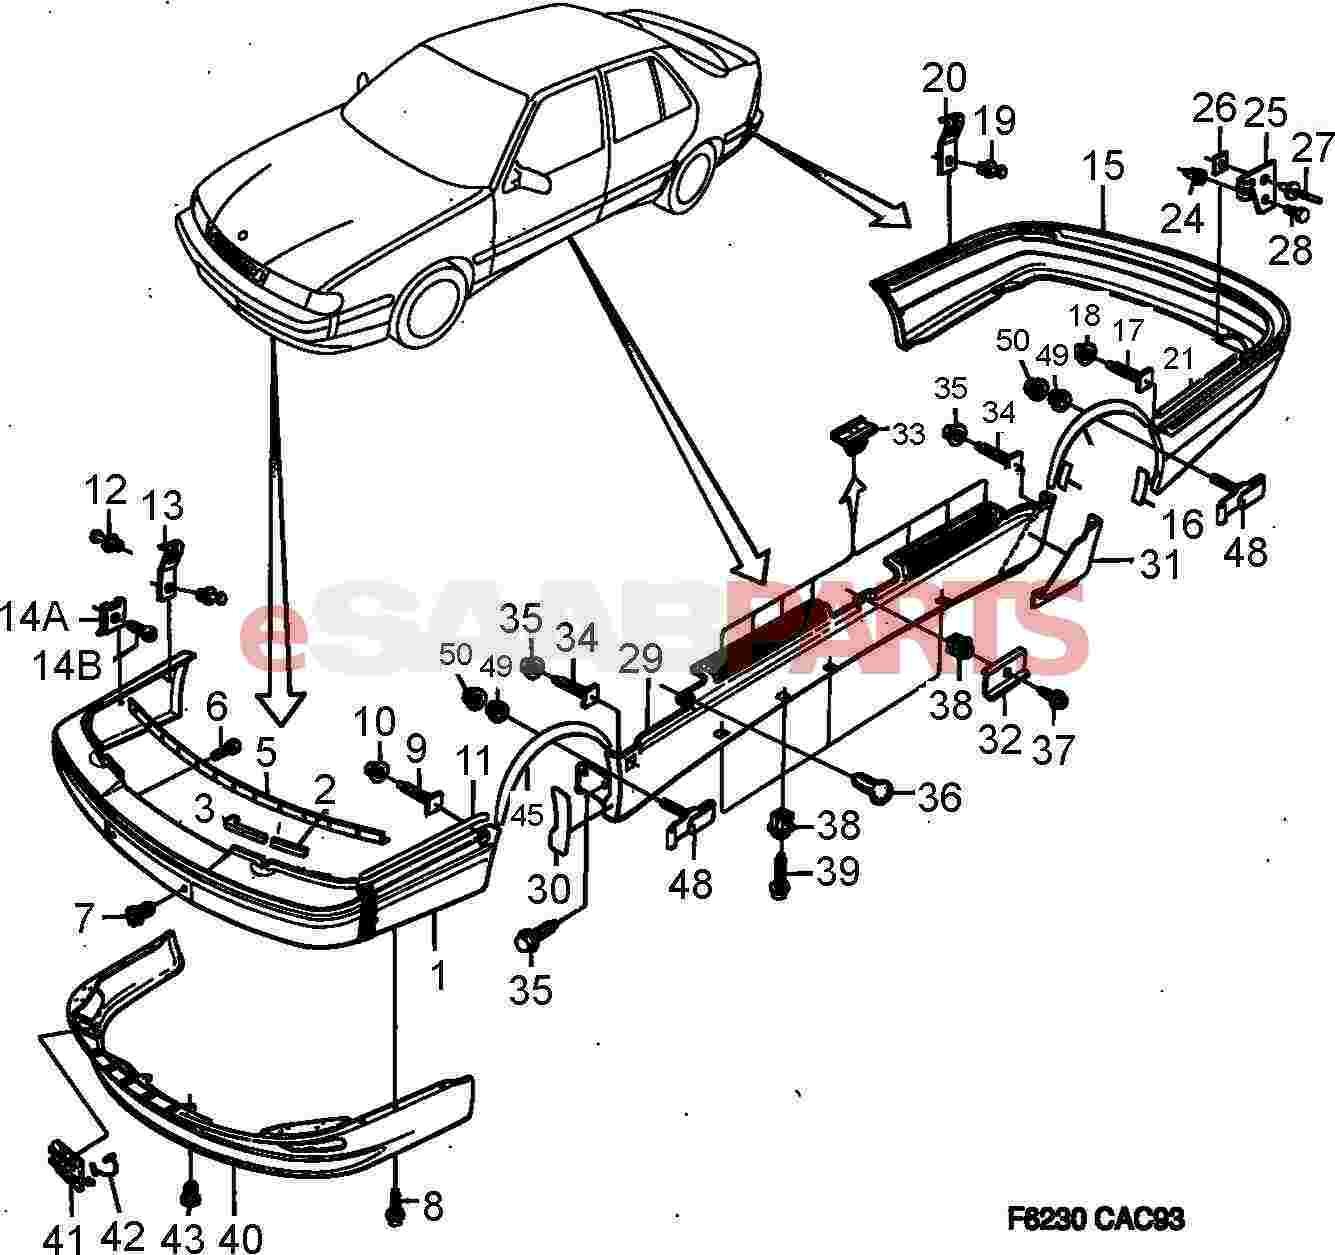 Saab 9000 Parts Diagram Wiring Fuse Box Engine 4090197 Clip Genuine From Esaabparts Com Rh 2004 9 3 Body List